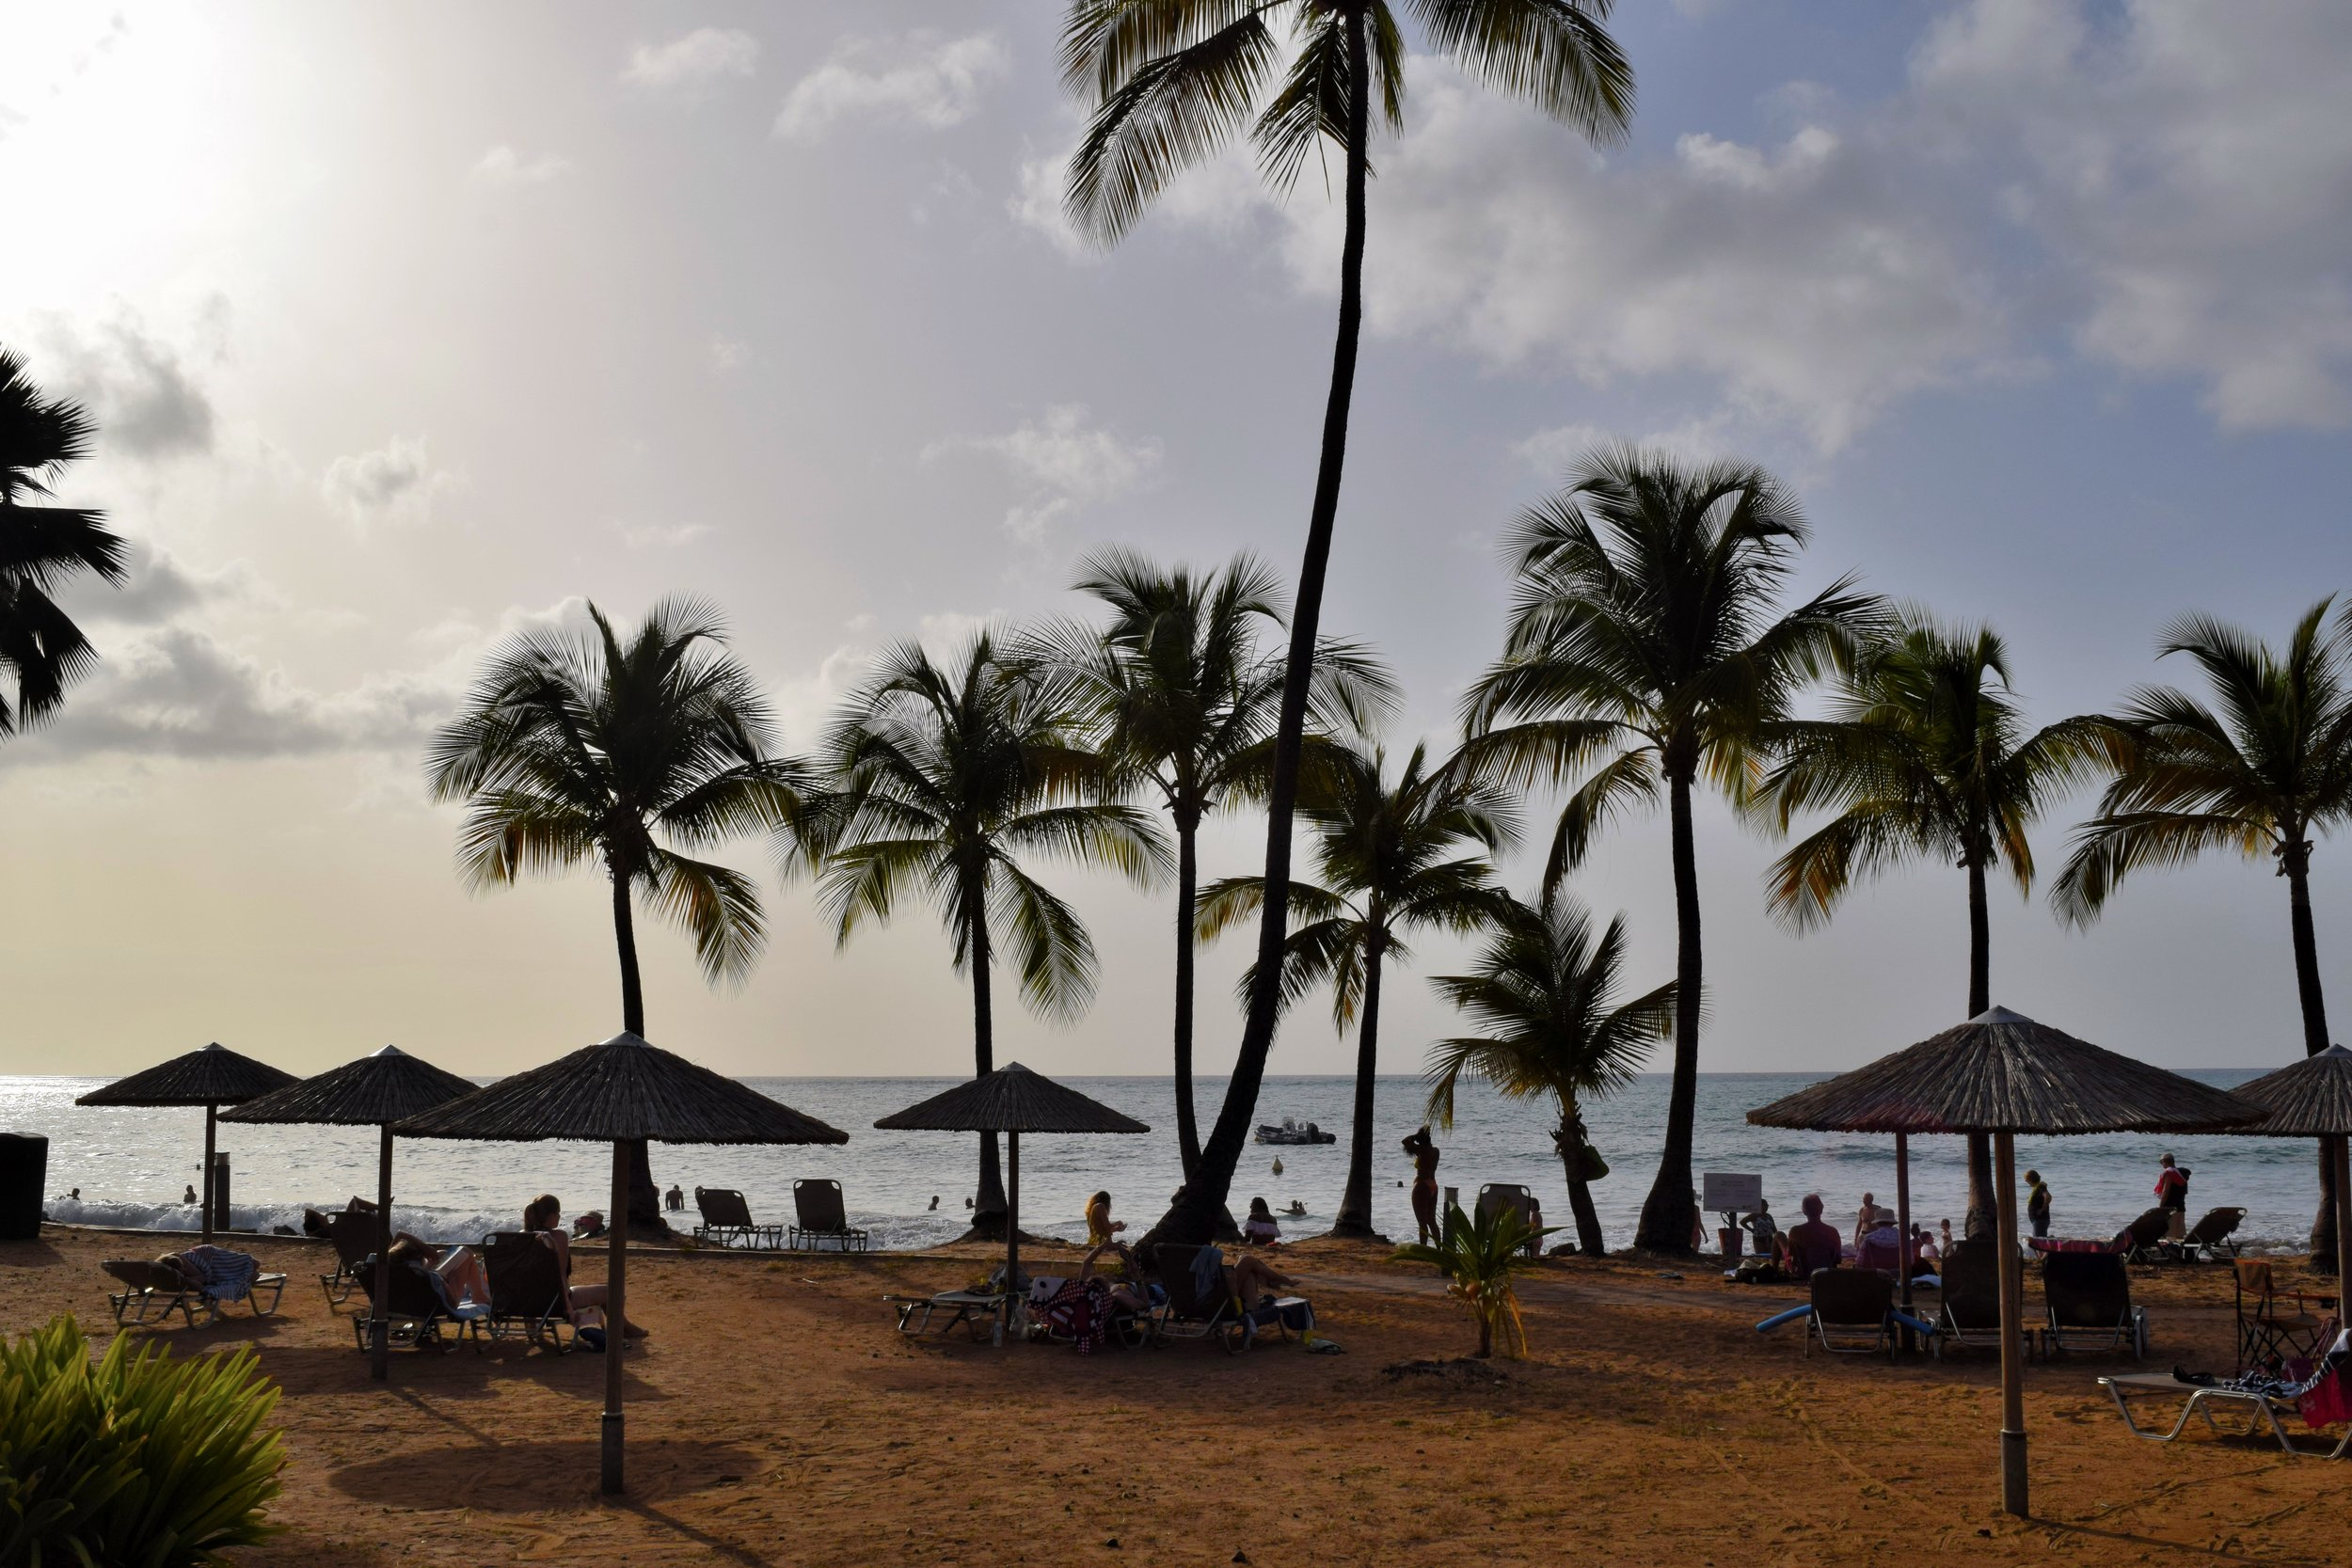 Views from the sand at Langley Resort Fort Royal in Guadeloupe.